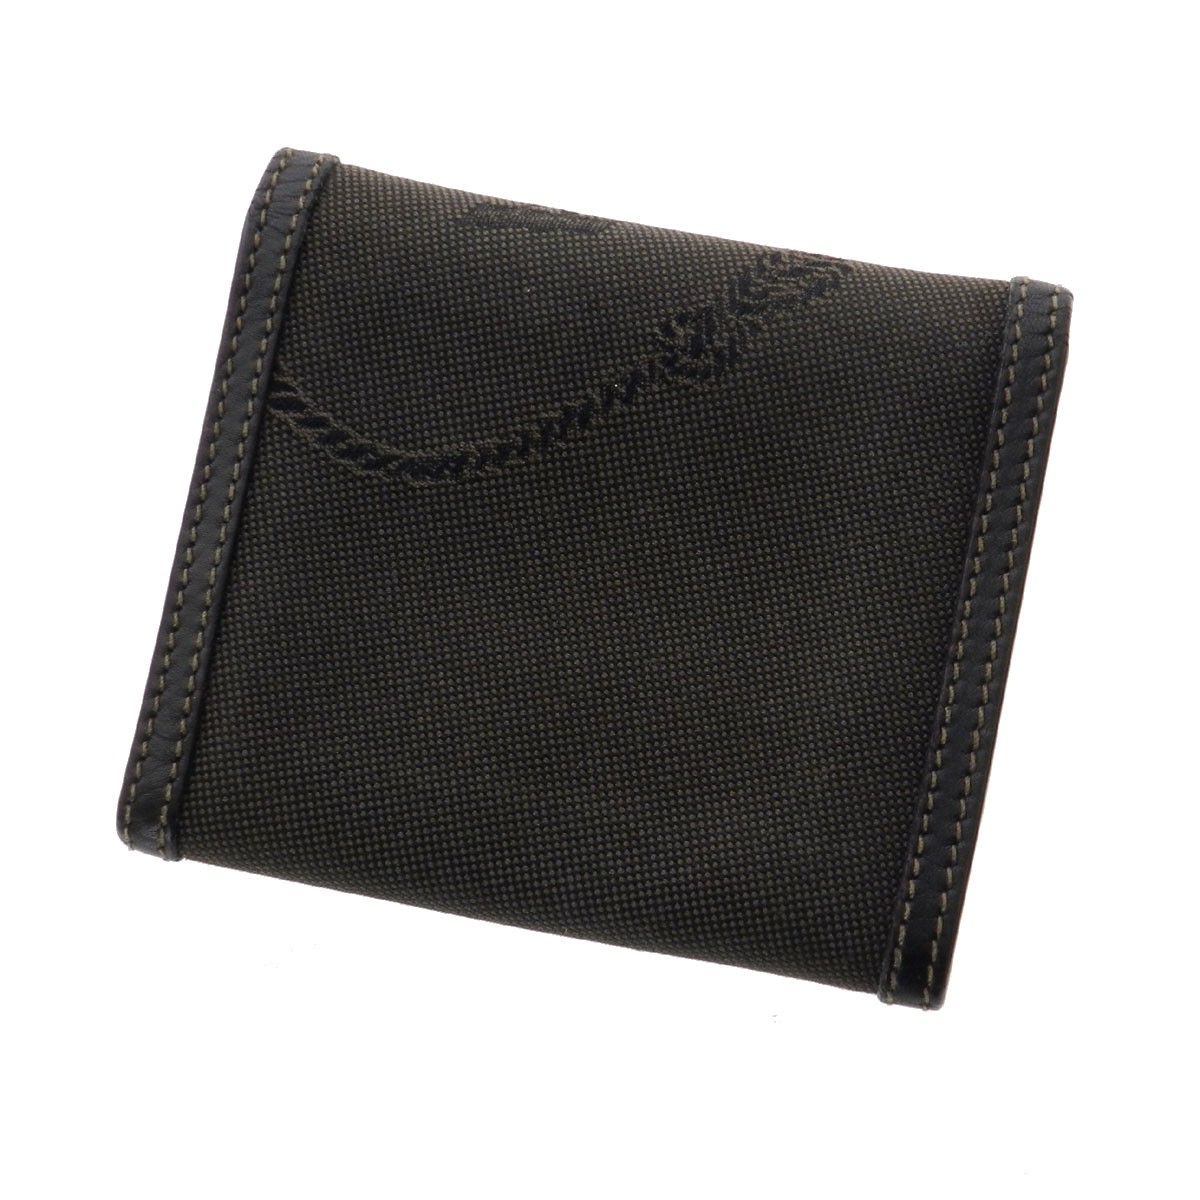 PRADA three fold fold wallet two purses (purses and) canvas x leather unisex